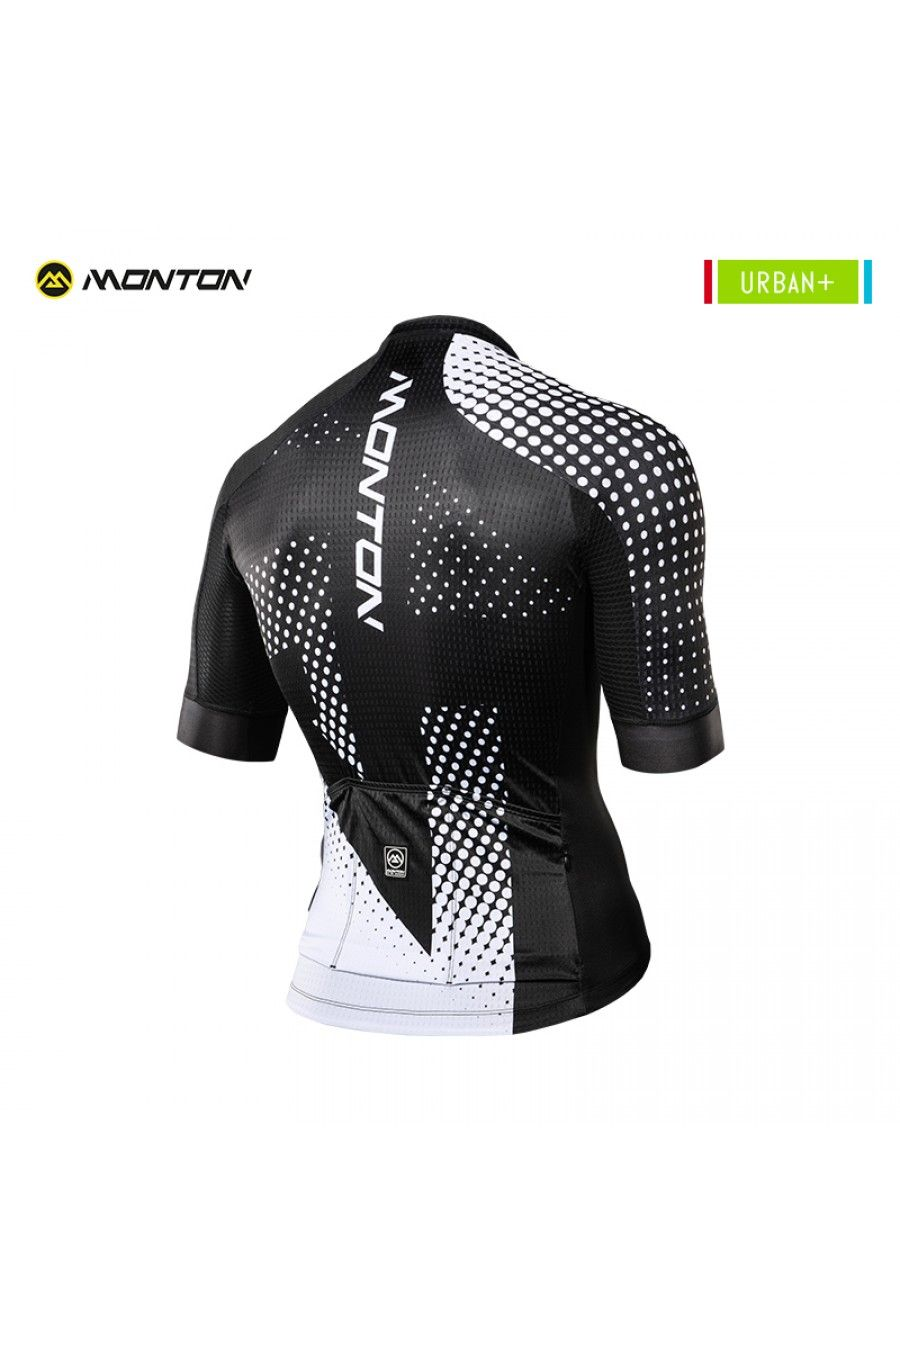 Bicycle Jersey Bicycle Jersey Cycling Outfit Jersey Design